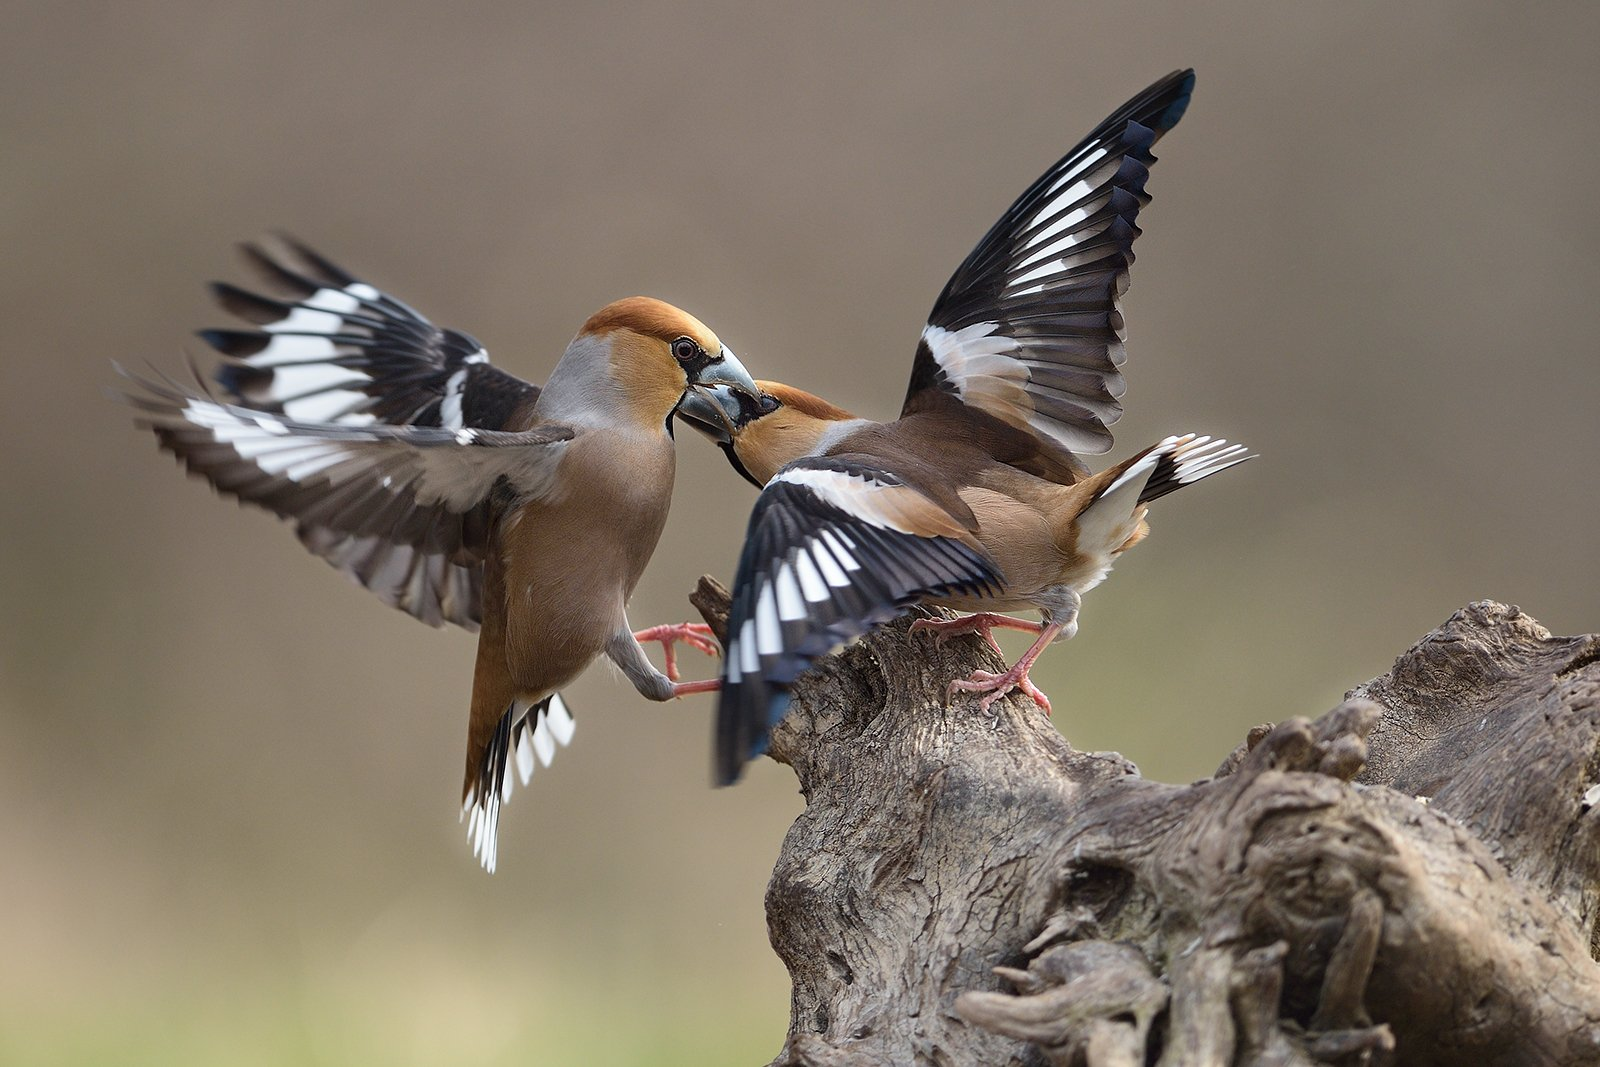 bird pics, birds, hawfinch, wildlife photography, дубонос, Radoslav Tsvetkov